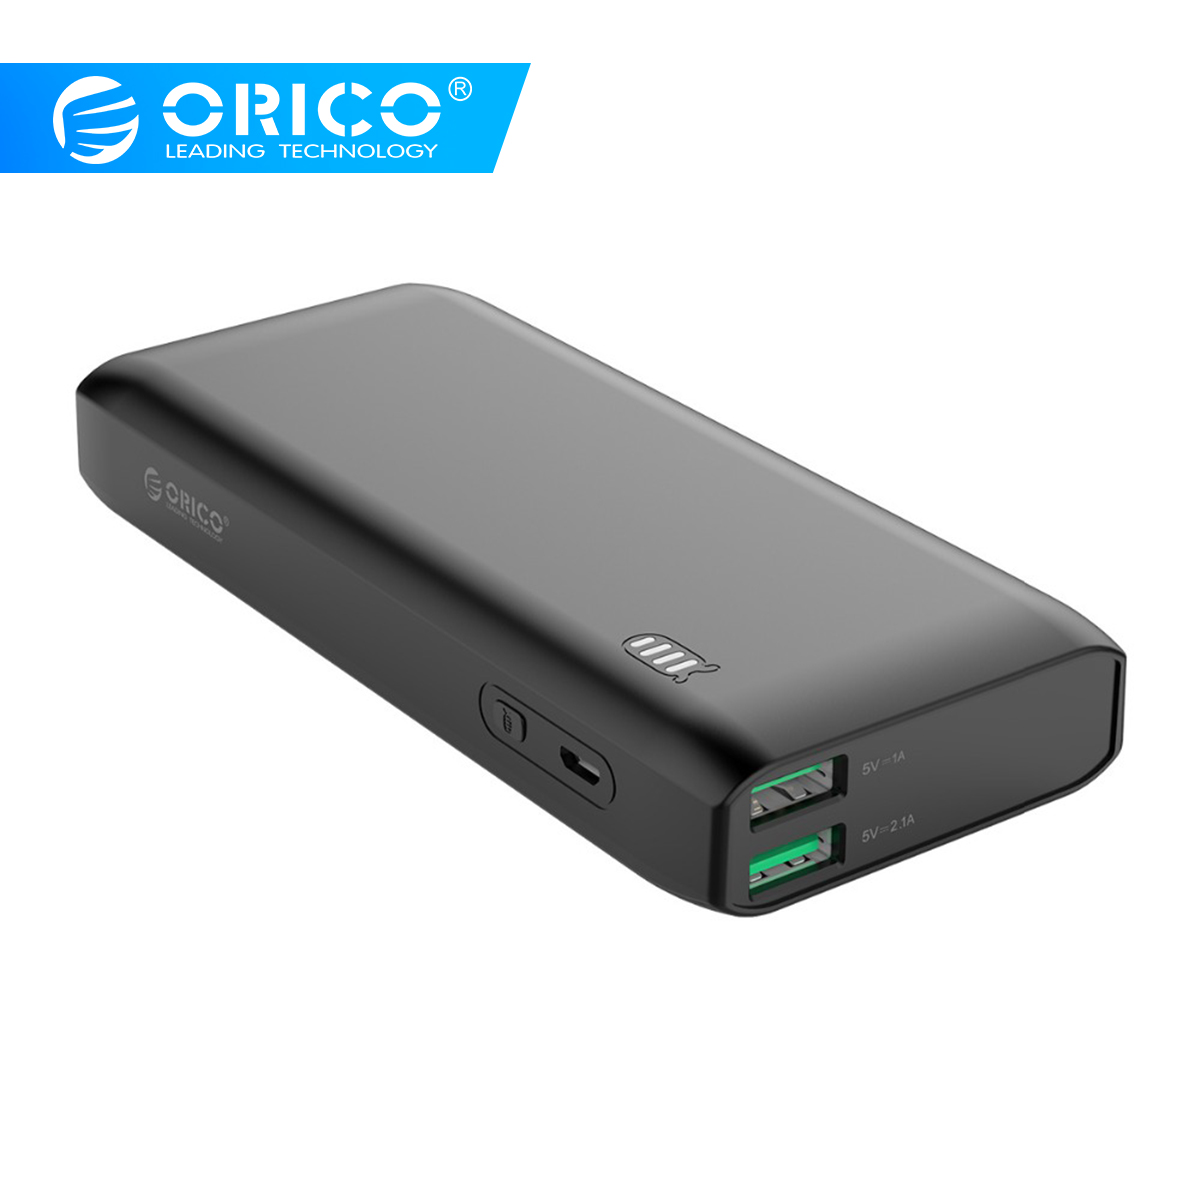 ORICO Power Bank 10000mAh 20000mAh External Battery Bank 12W Charge Powerbank With Dual USB Two-way Quick Charge Power Bank